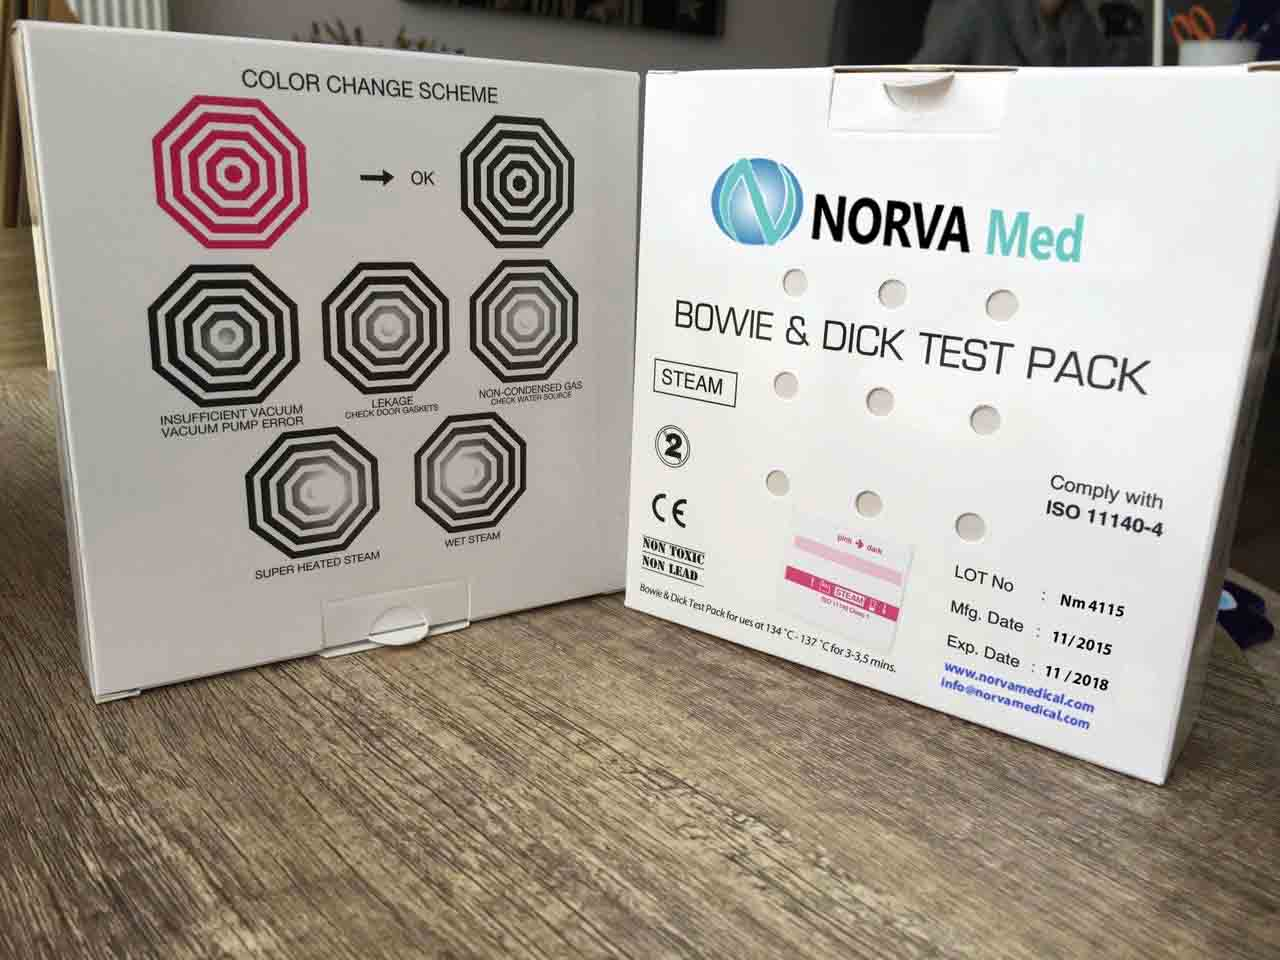 BOWIE&DICK AUTOCLAVE TEST PACK